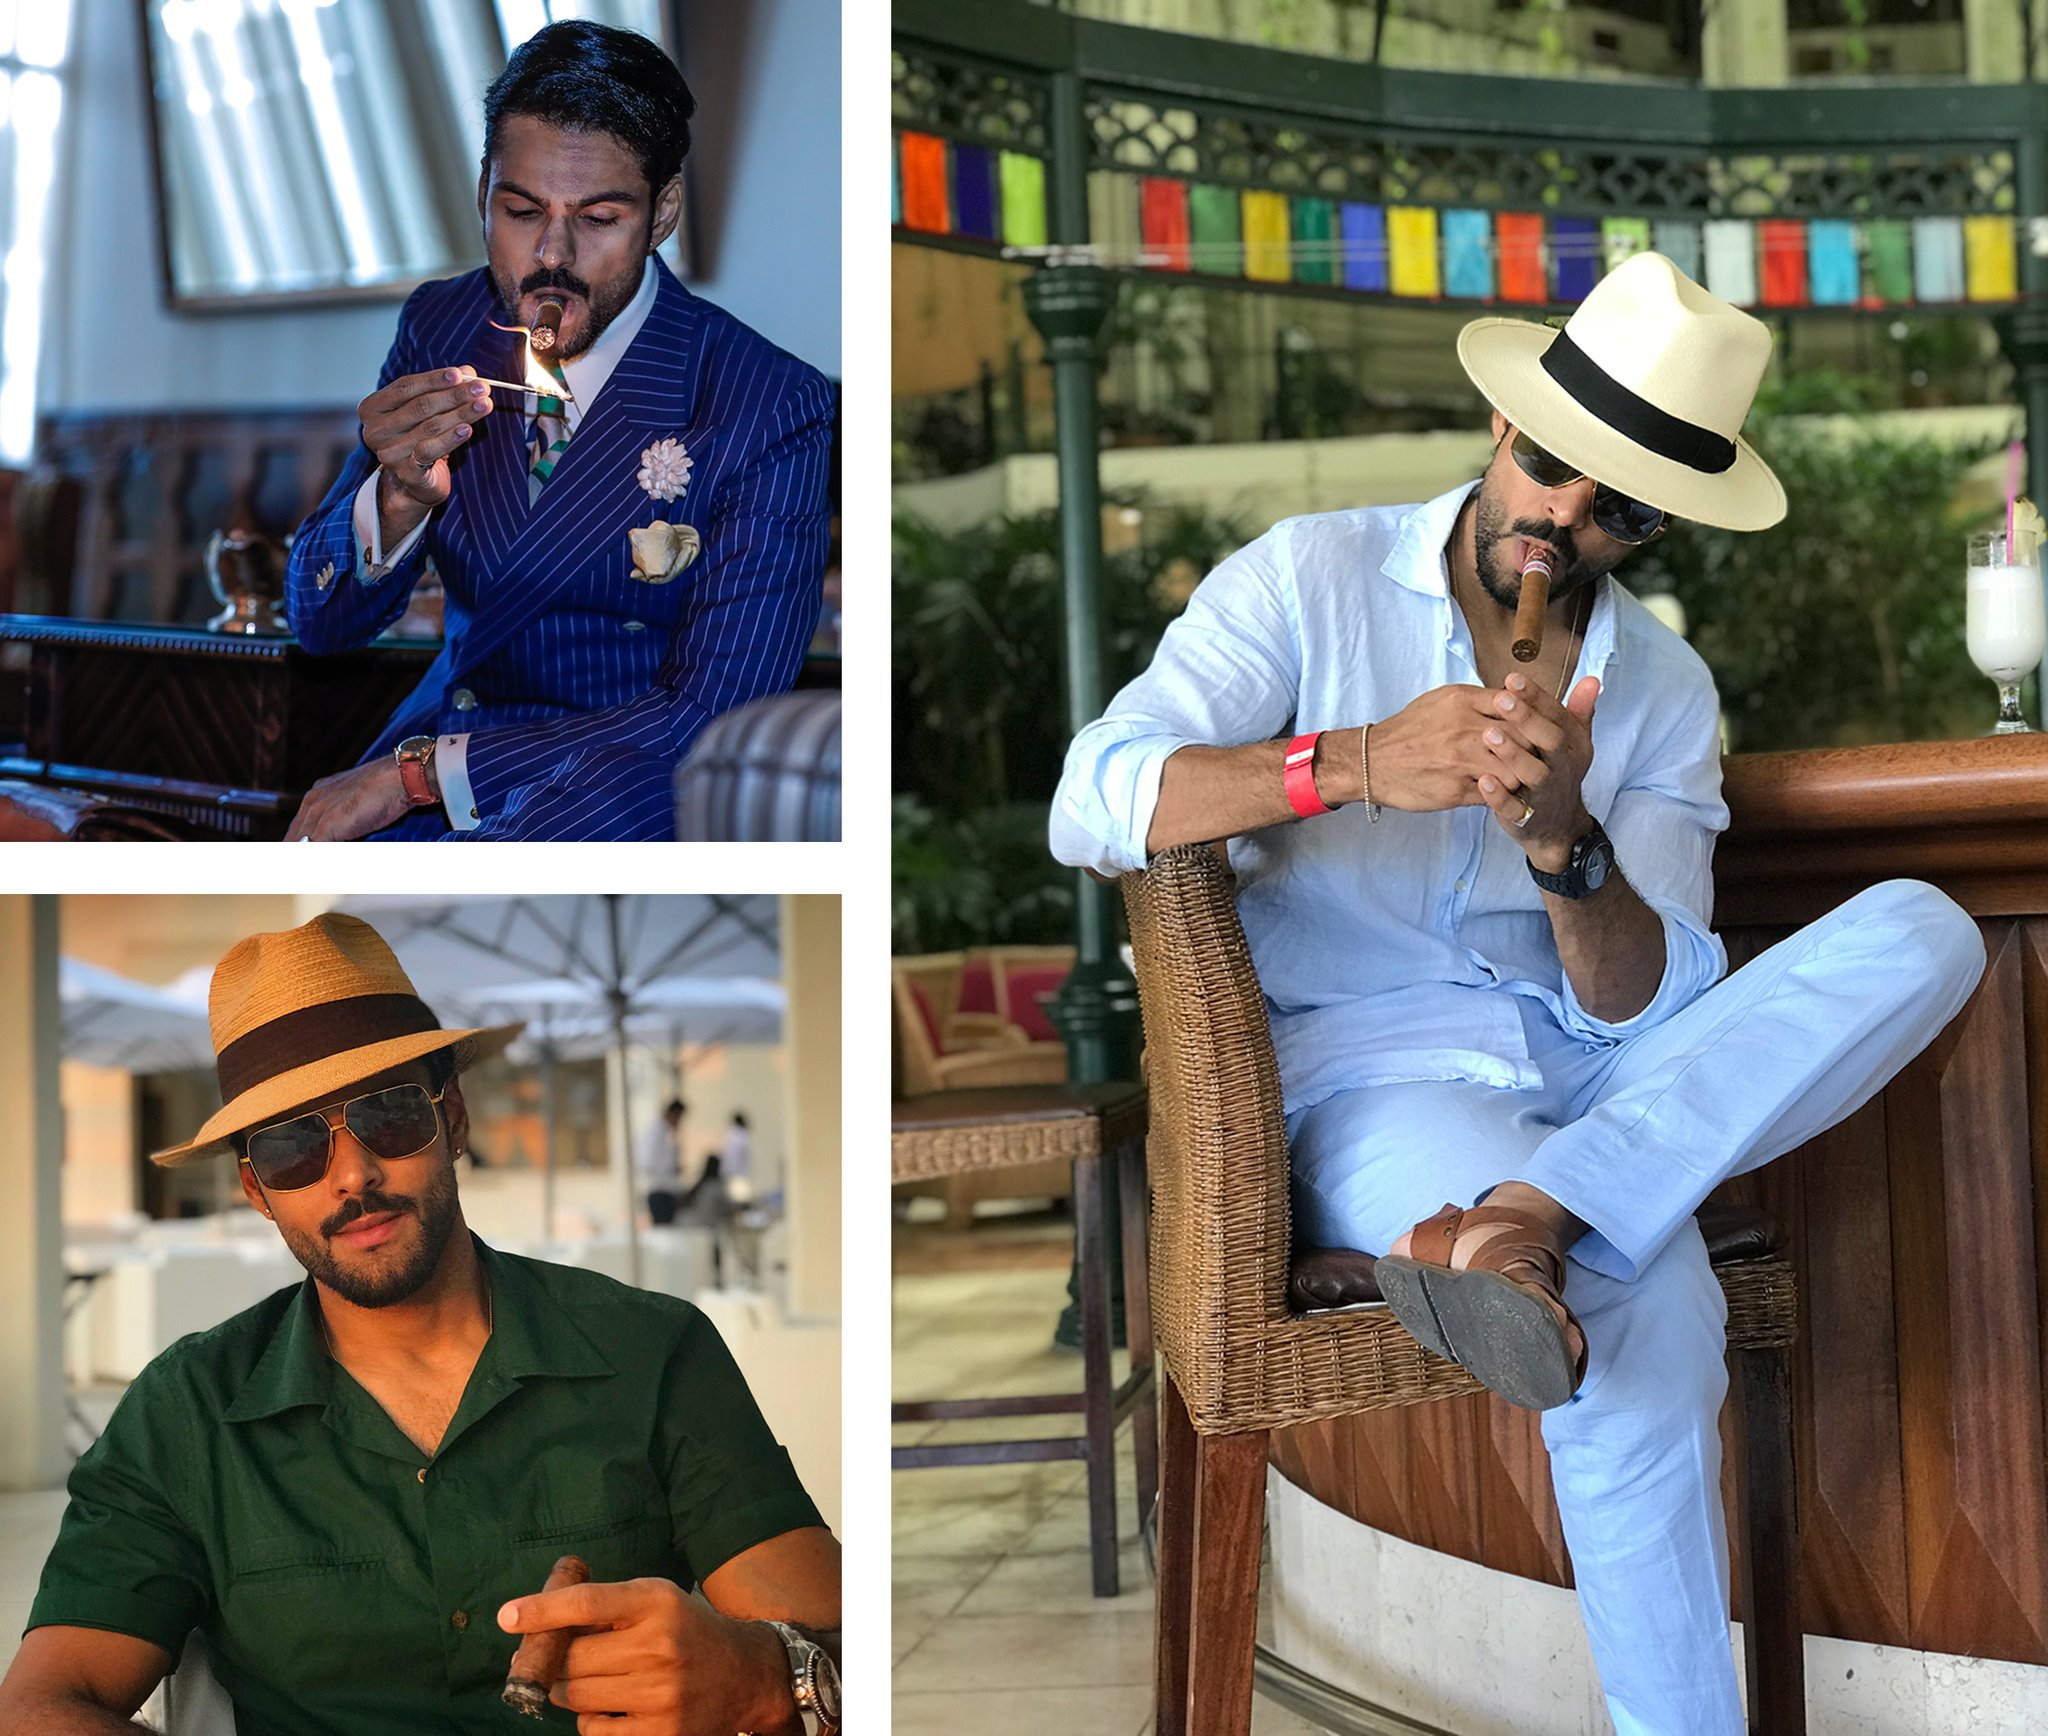 jasim_ahmed_talks_cuban_cigars_lifestyle_and_fashion_egm_cigars_5_2048x2048.jpg